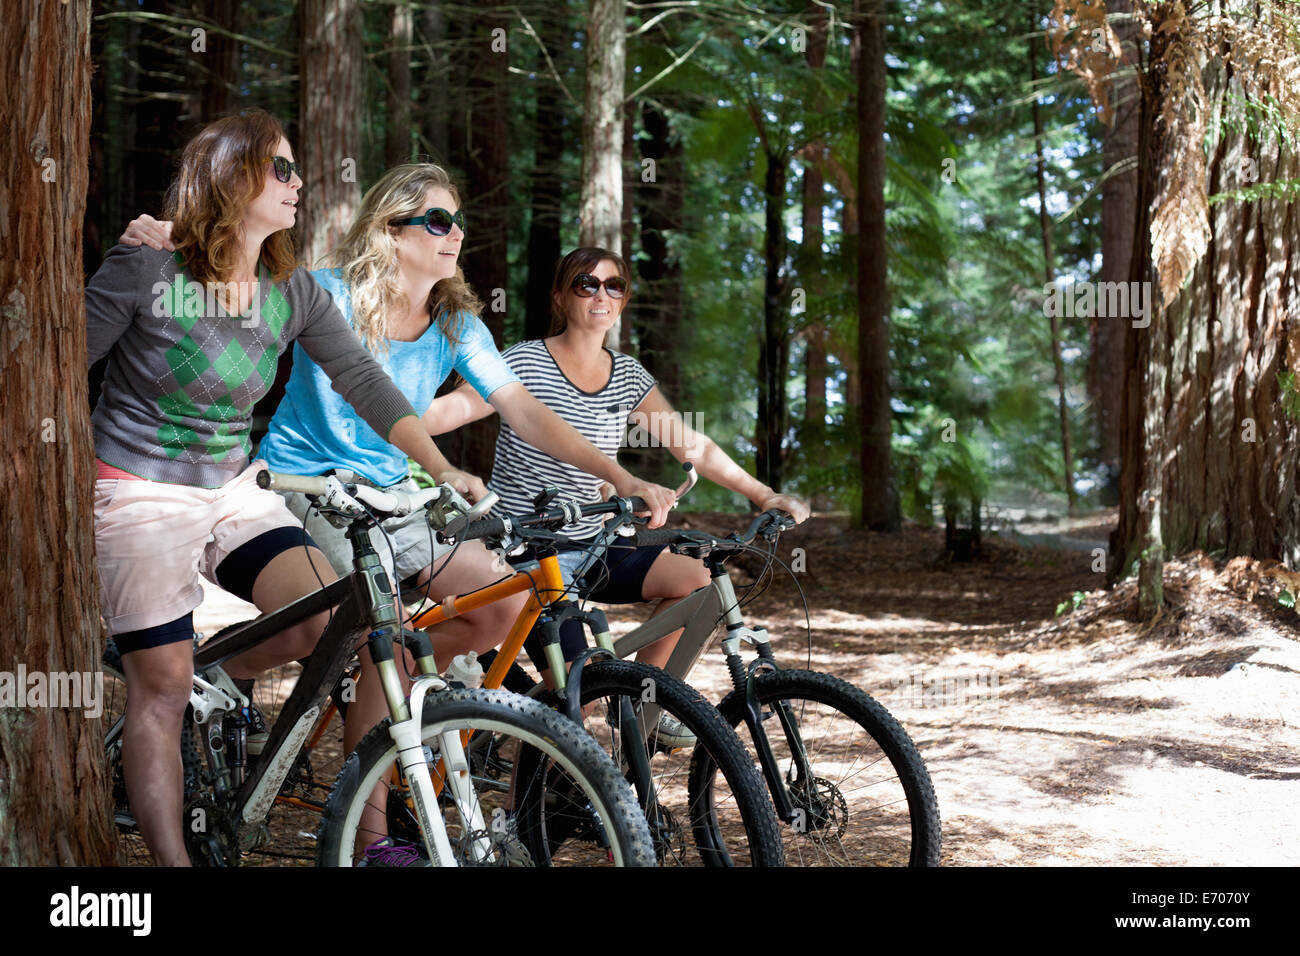 Portrait of three women mountain bikers in forest - Stock Image